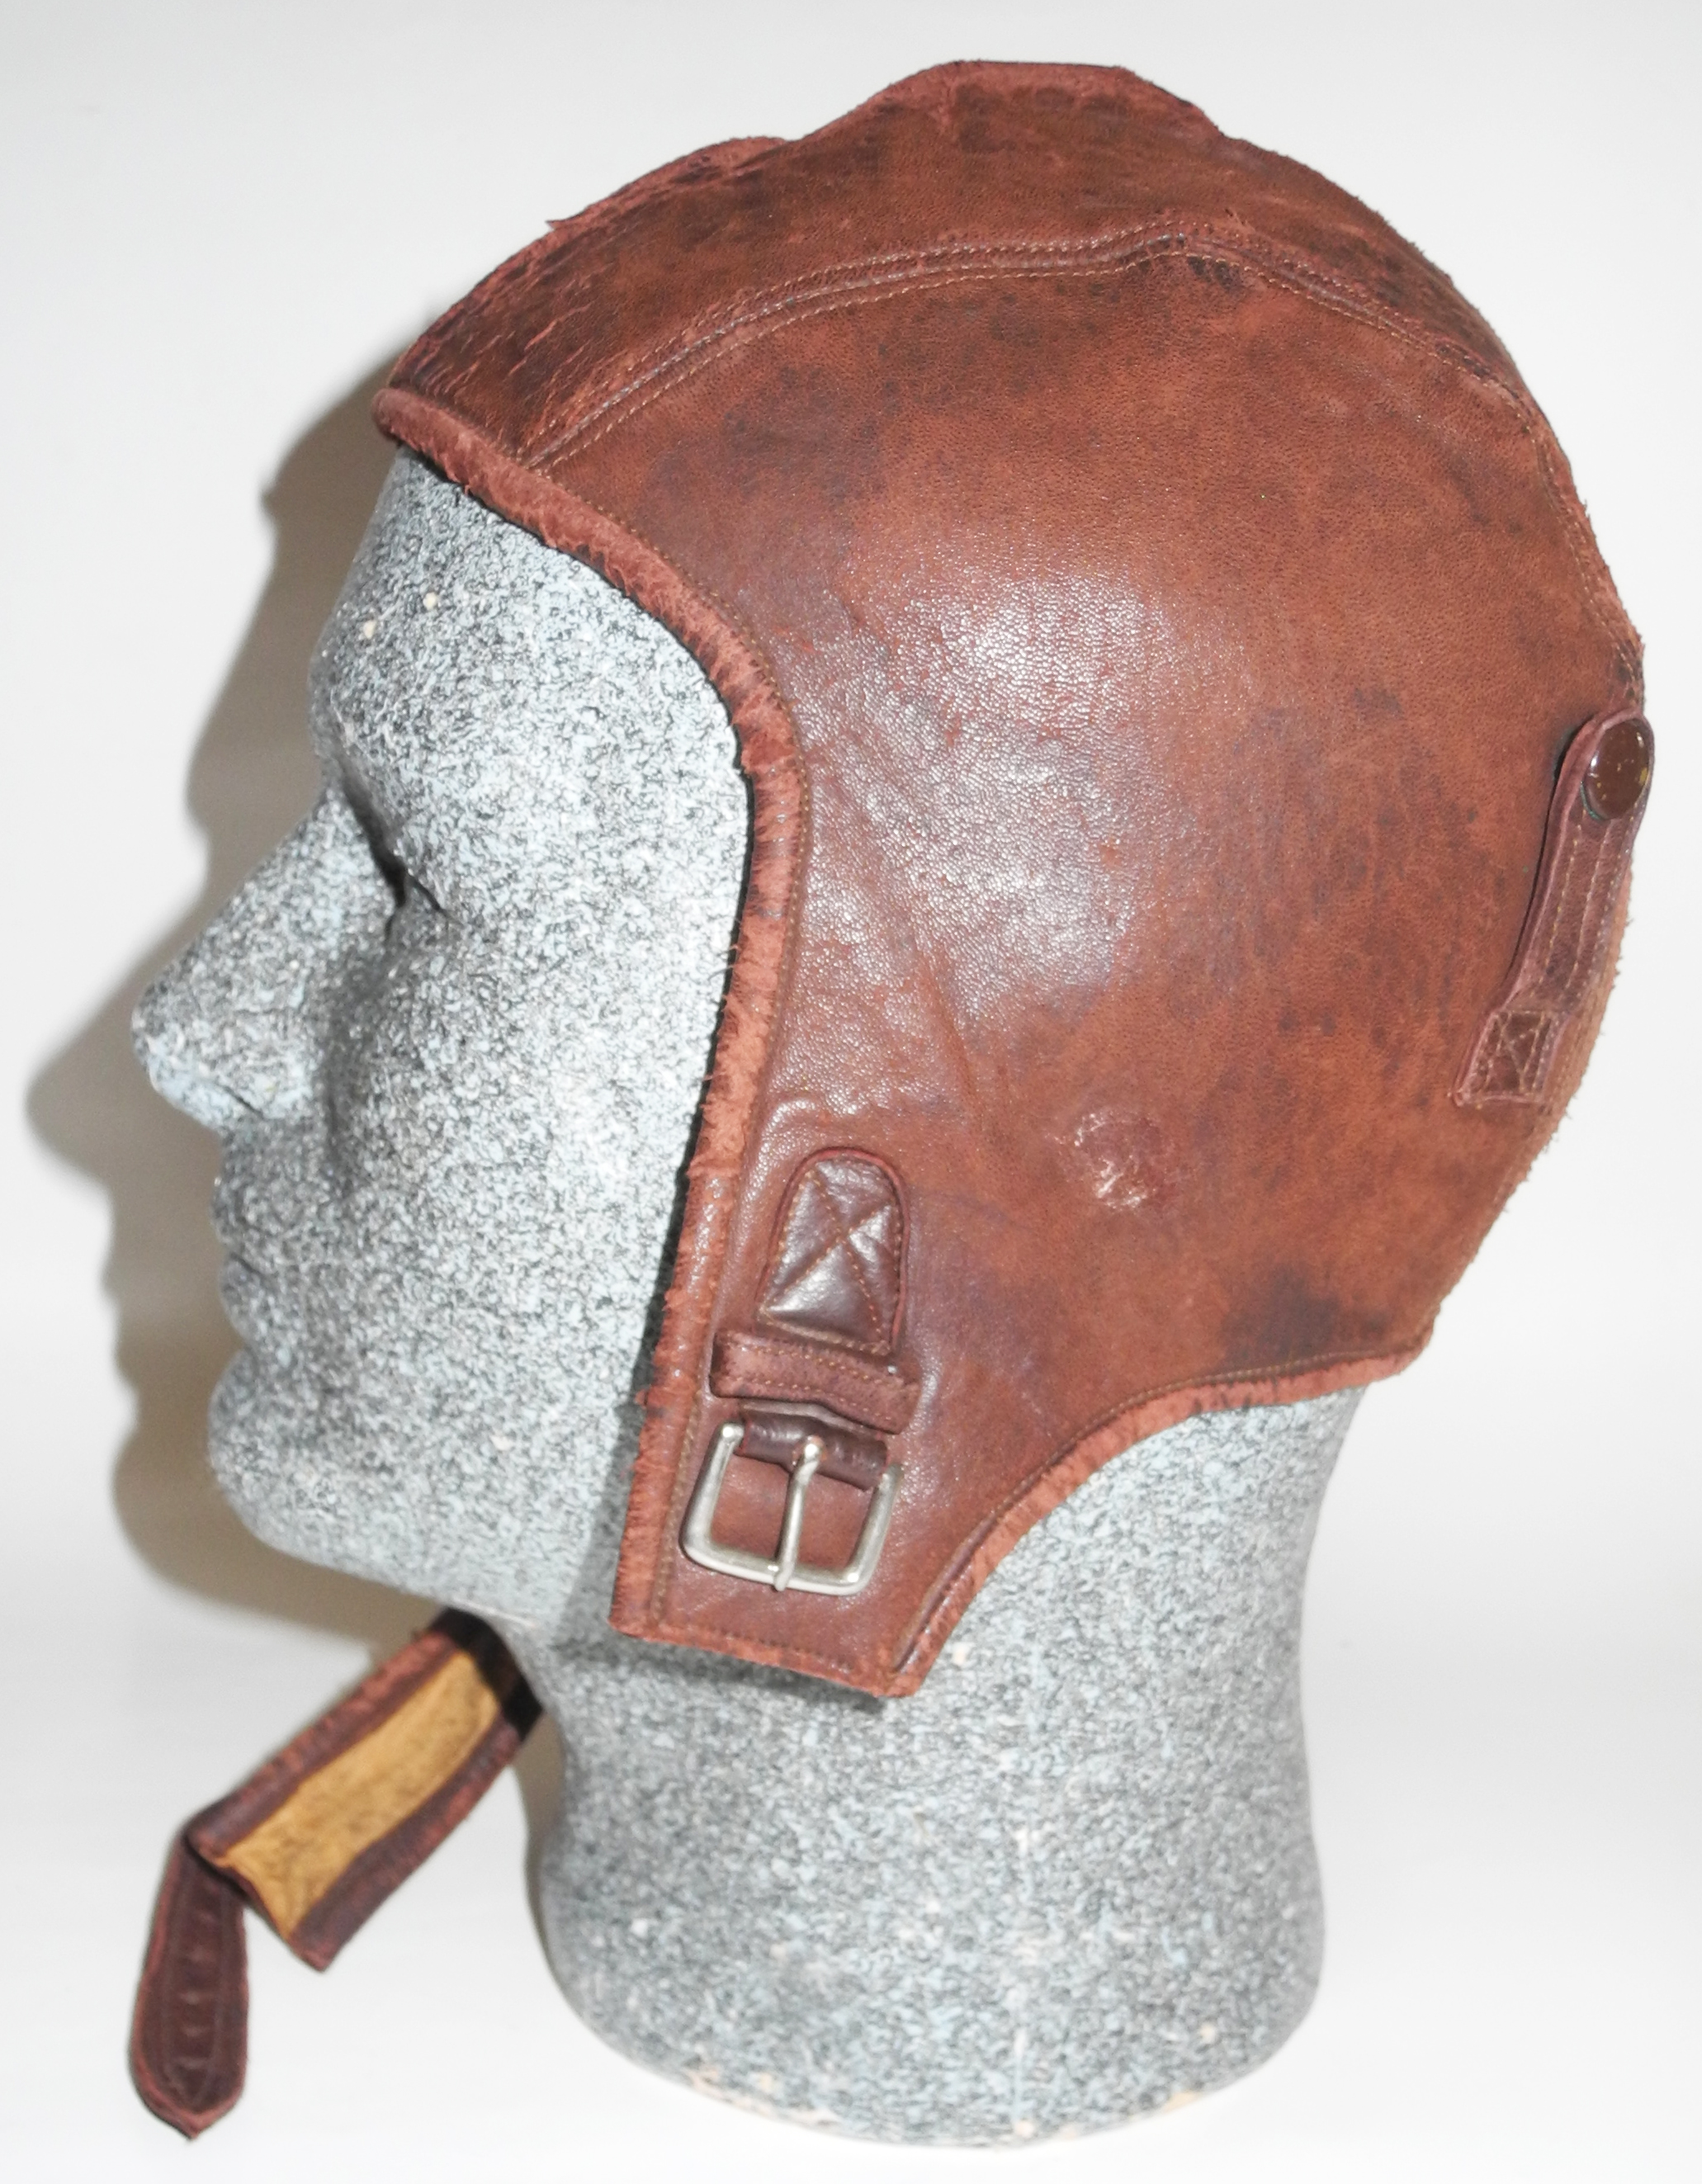 1920s/30s USN flying helmet